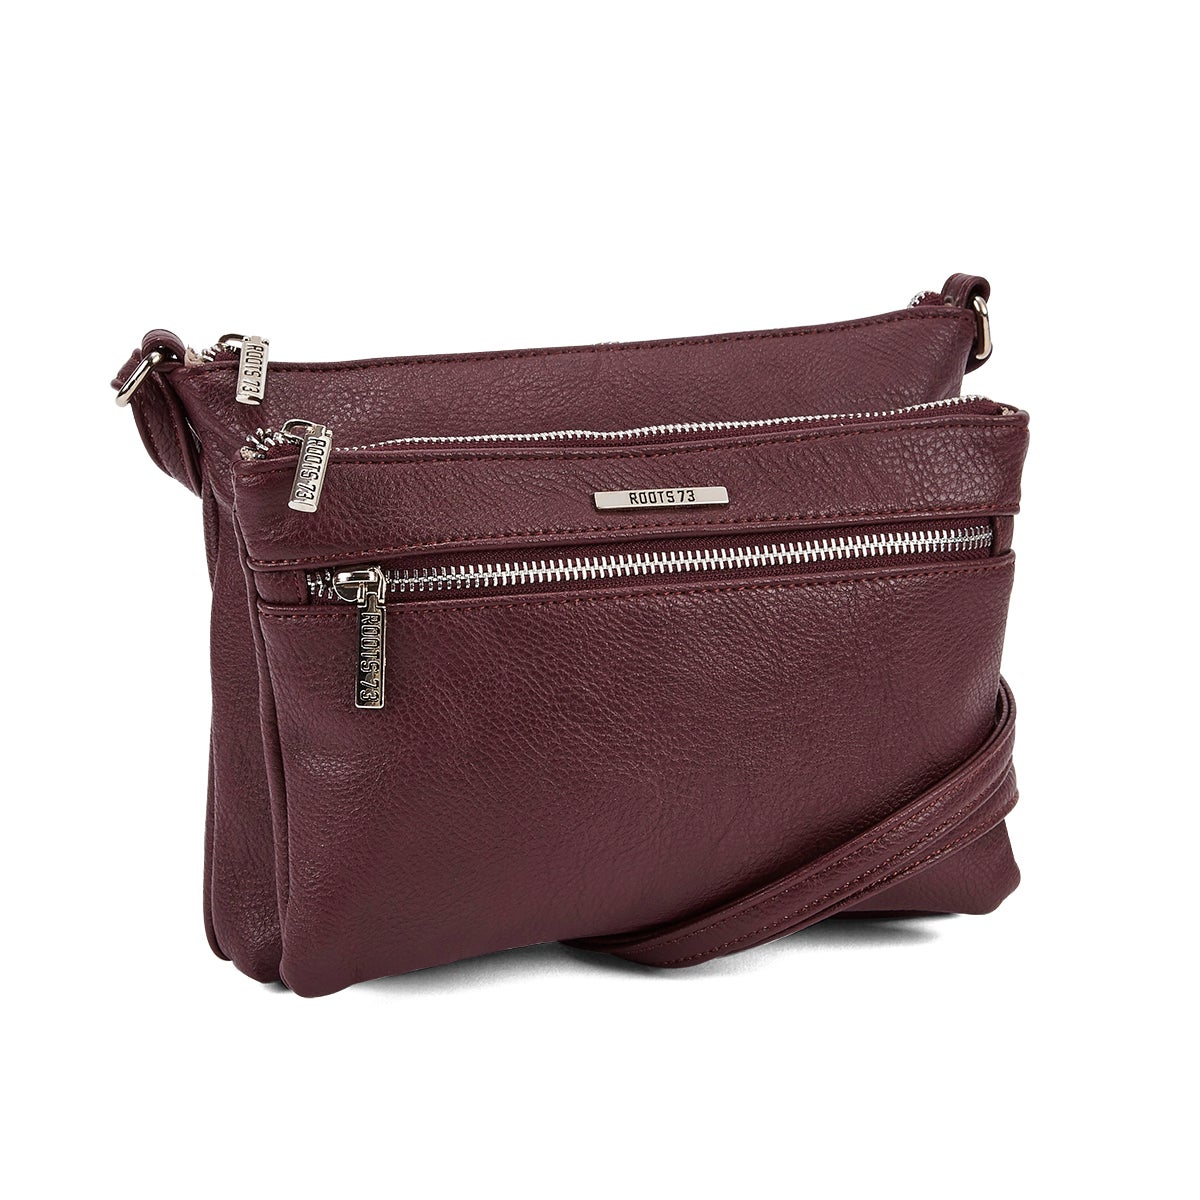 Lds Roots73 bord 3 zipper cross body bag